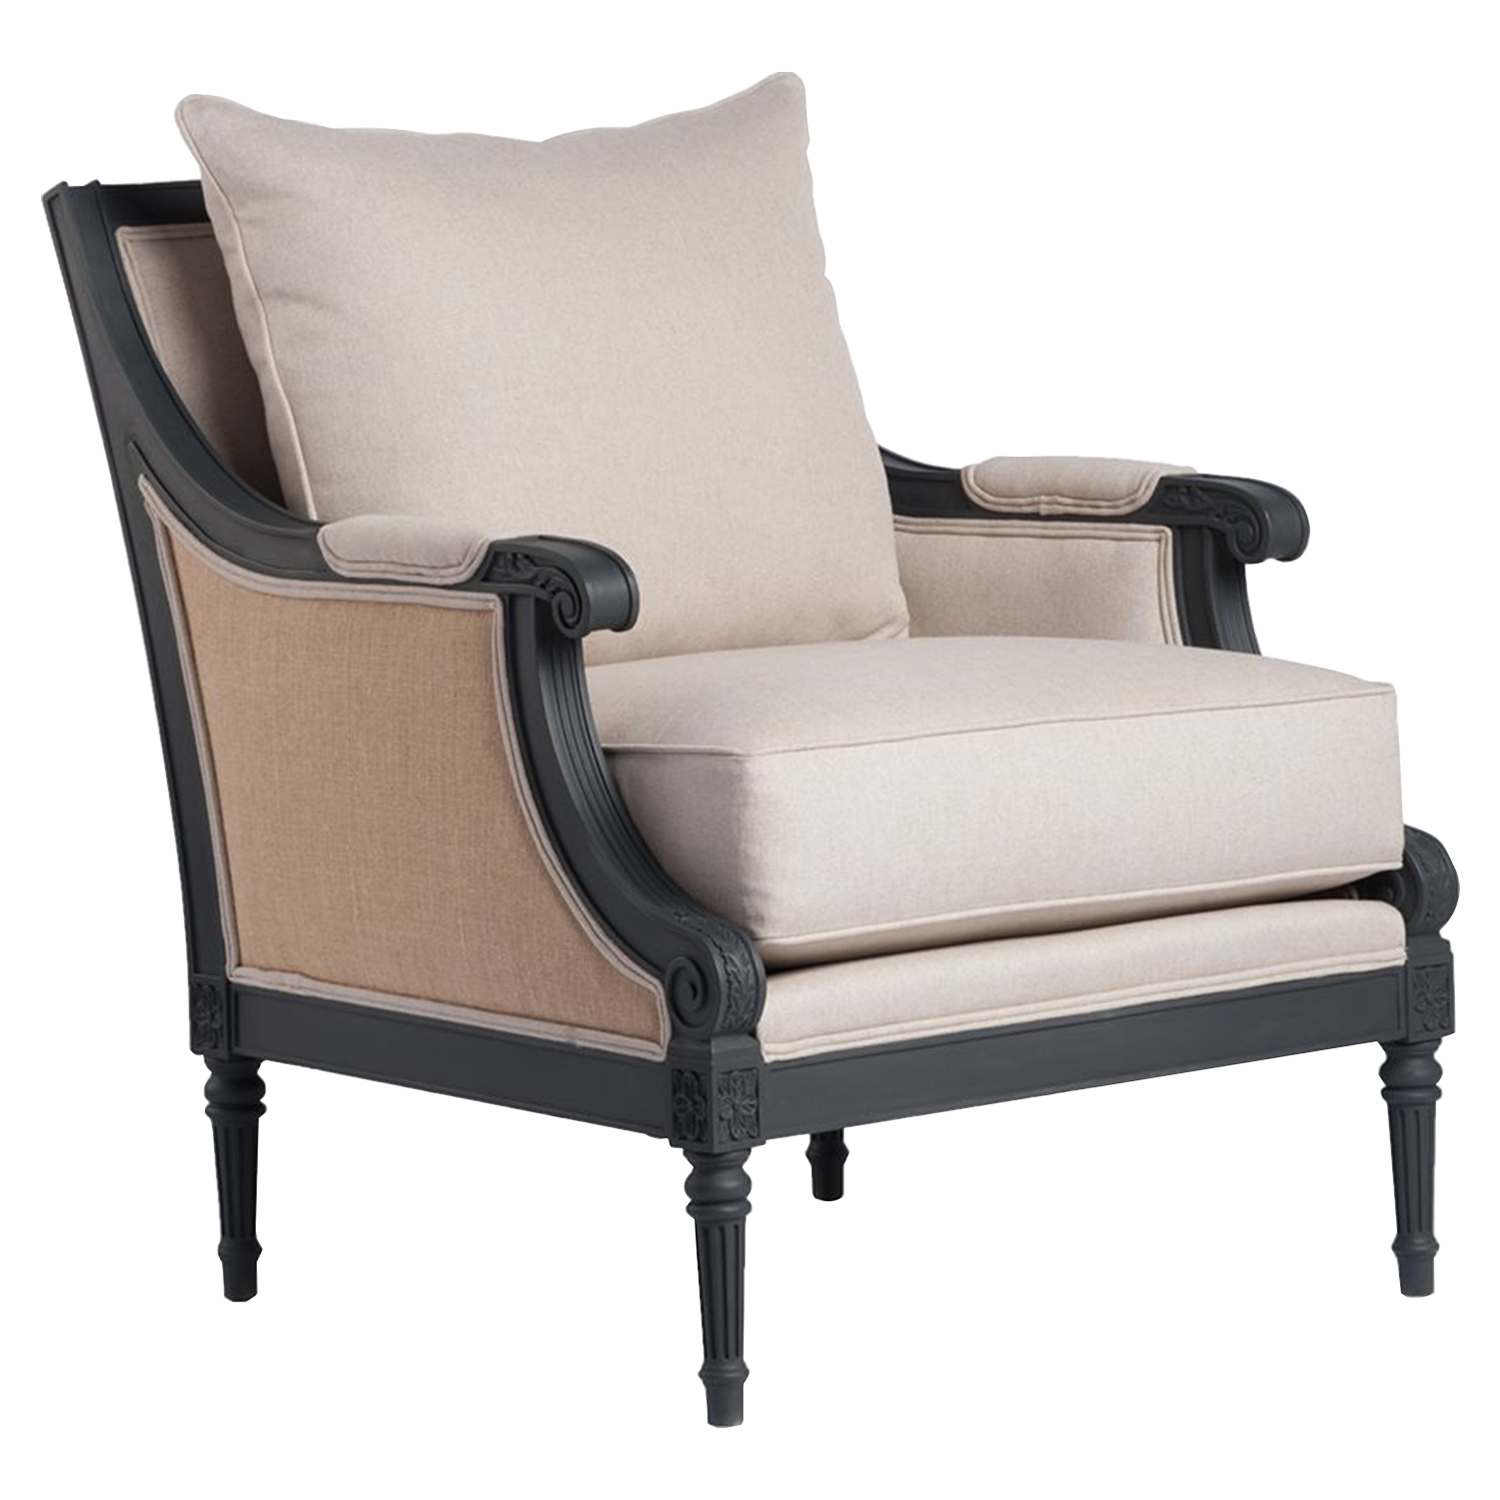 Raleigh Neoclassical Arm Chair - Graphite